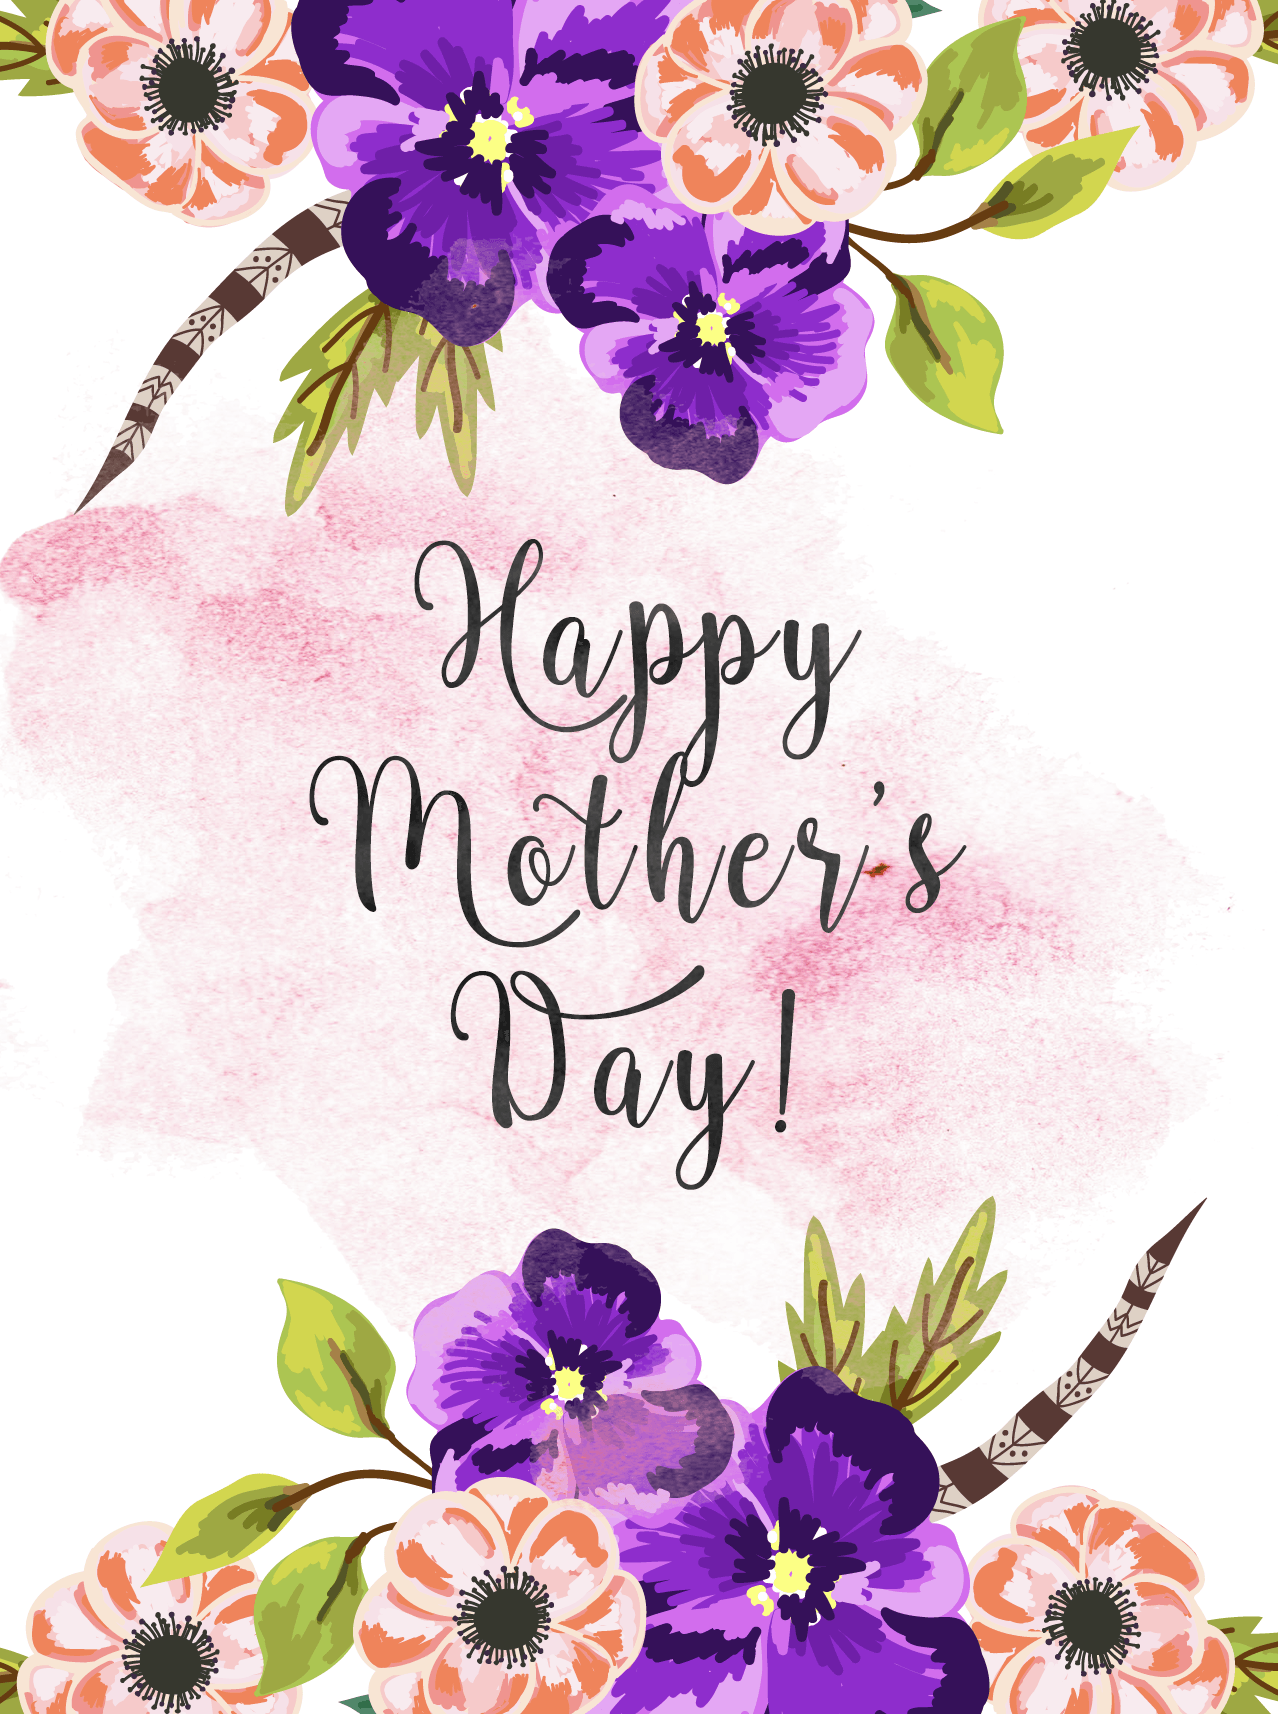 Use These Free Printable Mother S Day Cards And Tags To Organize A Treat For Mom This Free Mothers Day Cards Mother S Day Gift Card Mothers Day Cards Printable